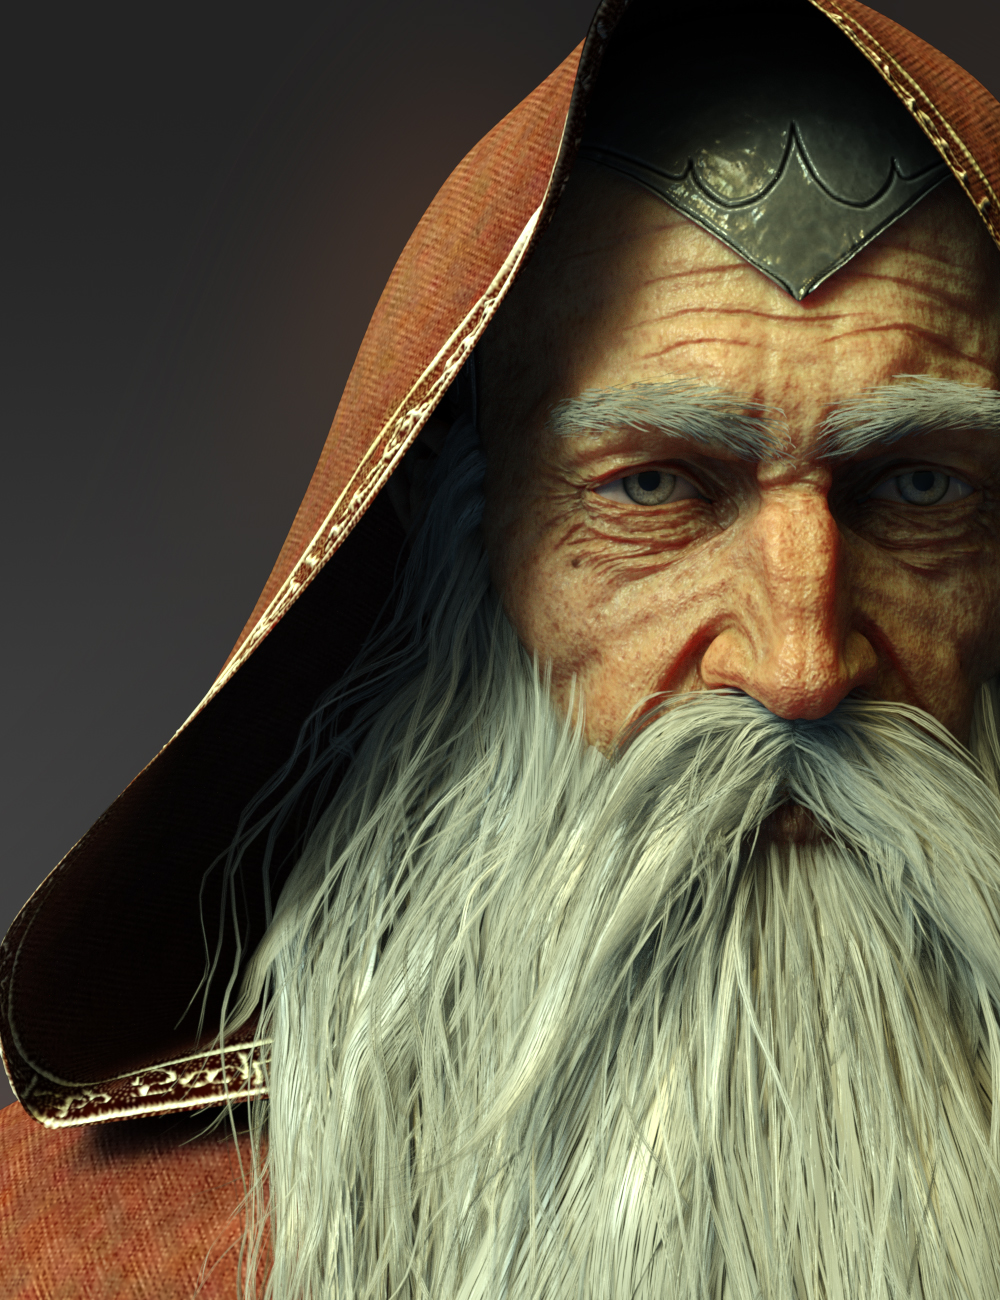 Wise Wizard HD Character for Genesis 8 Male by: Luthbel, 3D Models by Daz 3D